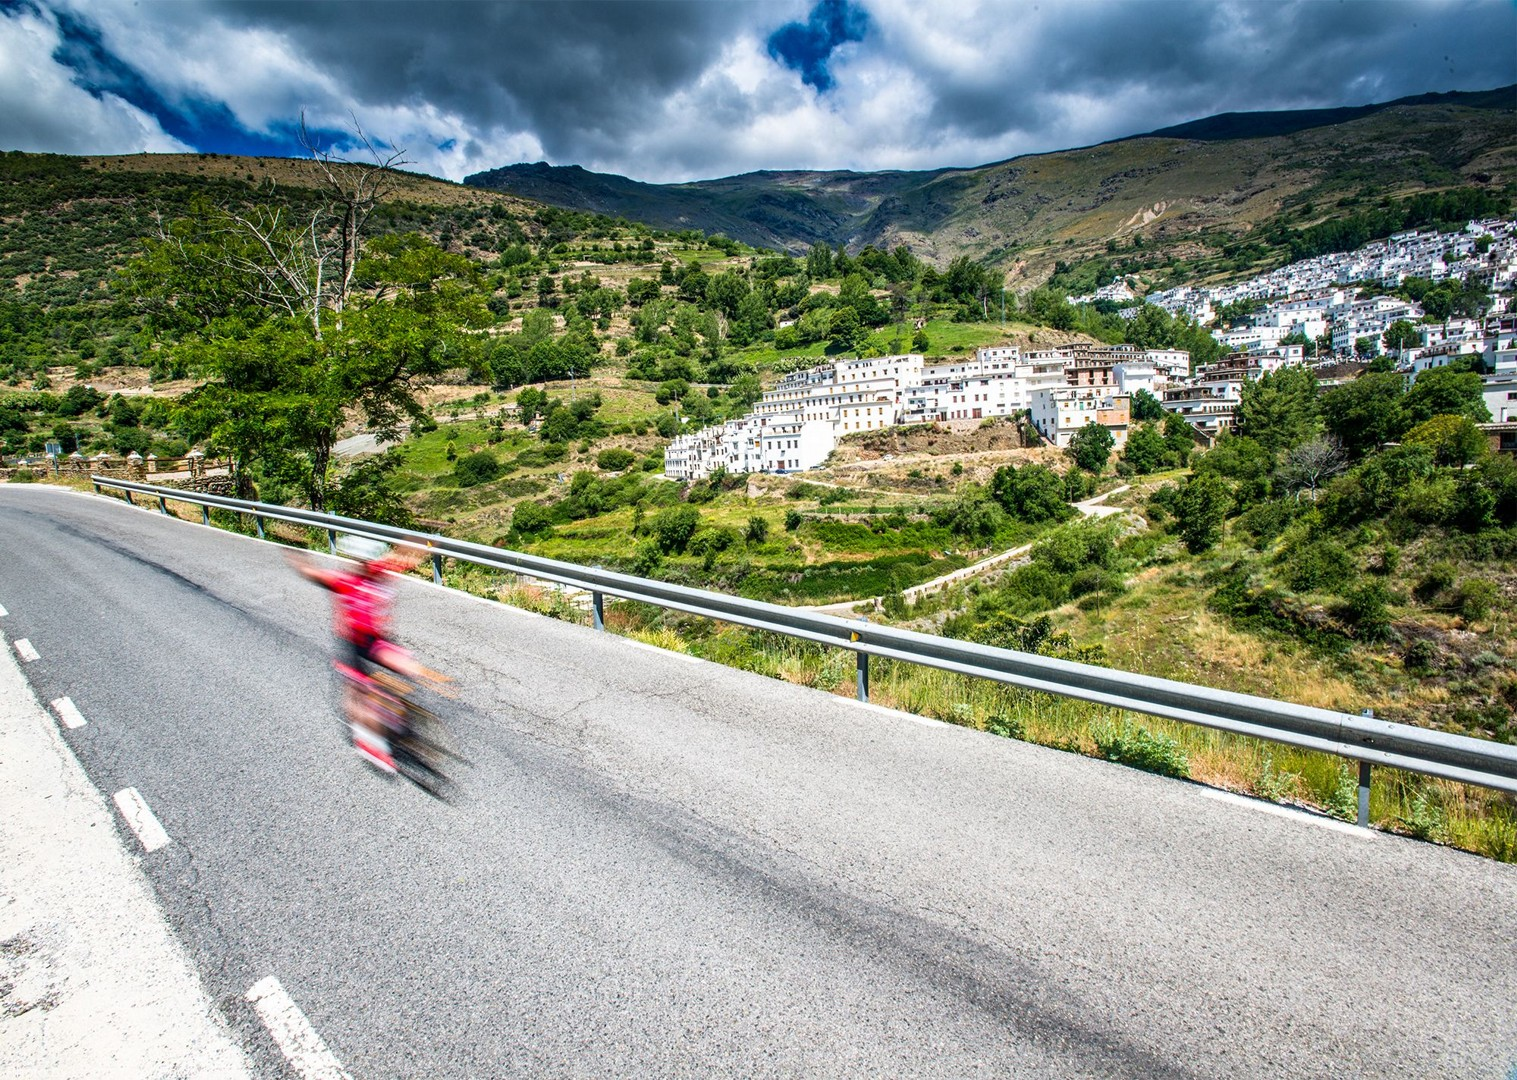 southern-spain-guided-road-cycling-holiday-saddle-skedaddle-tour.jpg - Southern Spain - Sierra Nevada and Granada - Guided Road Cycling Holiday - Road Cycling